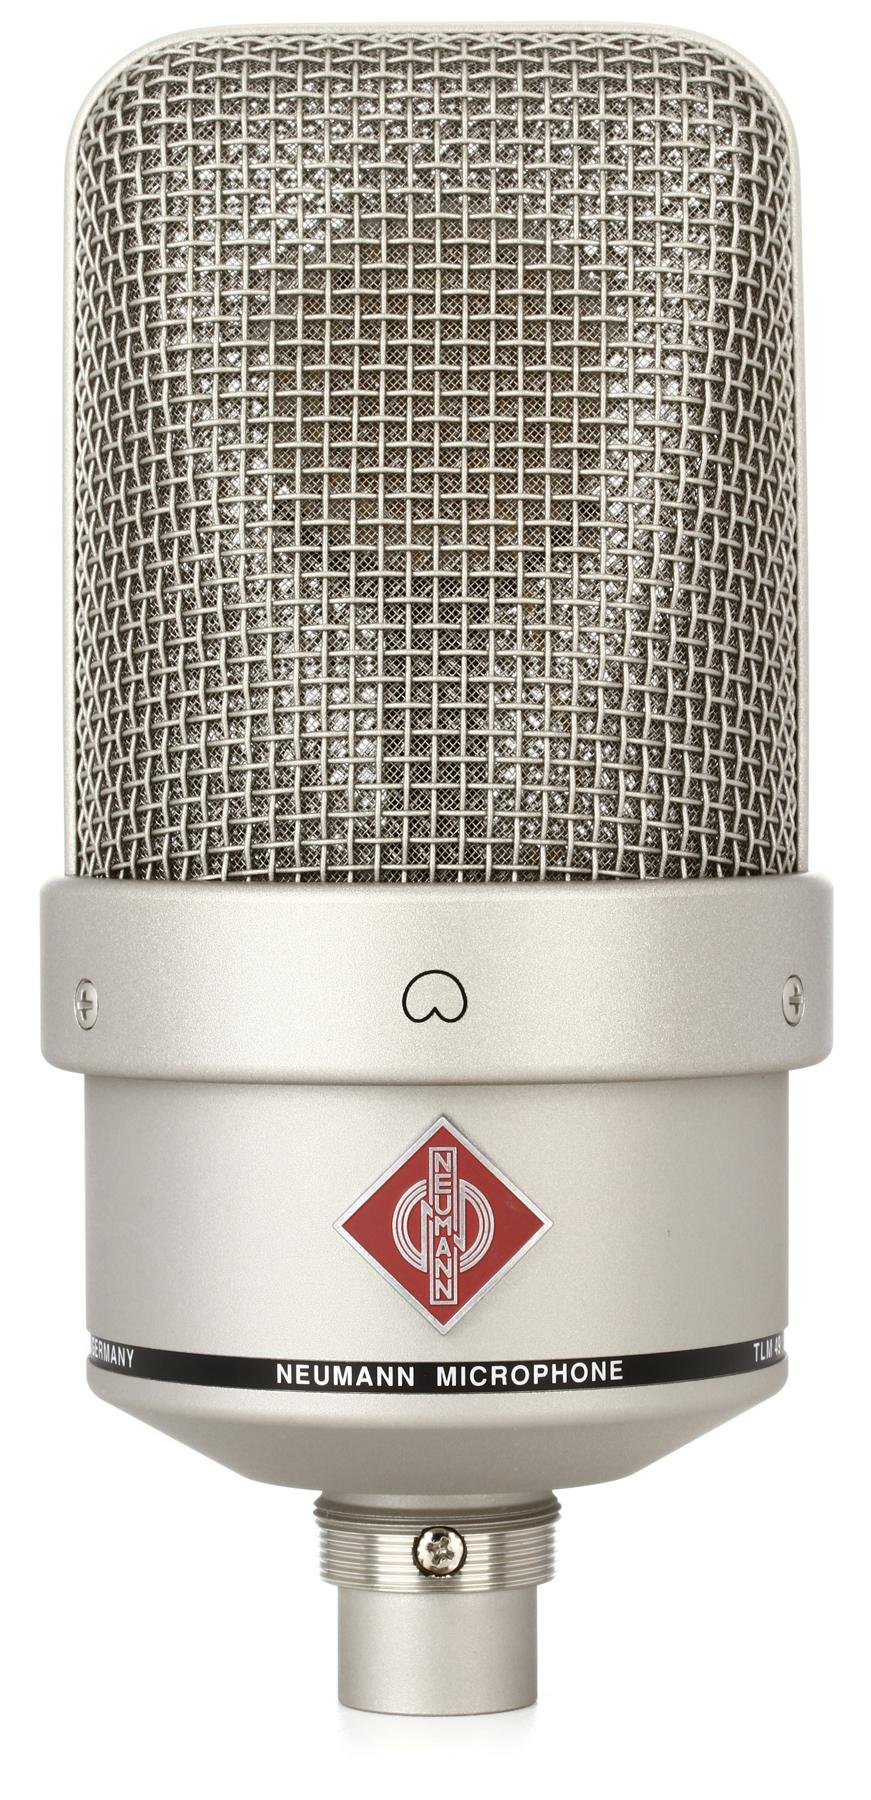 Neumann Tlm 49 Large Diaphragm Condenser Microphone Sweetwater Diagram Construction Image 1